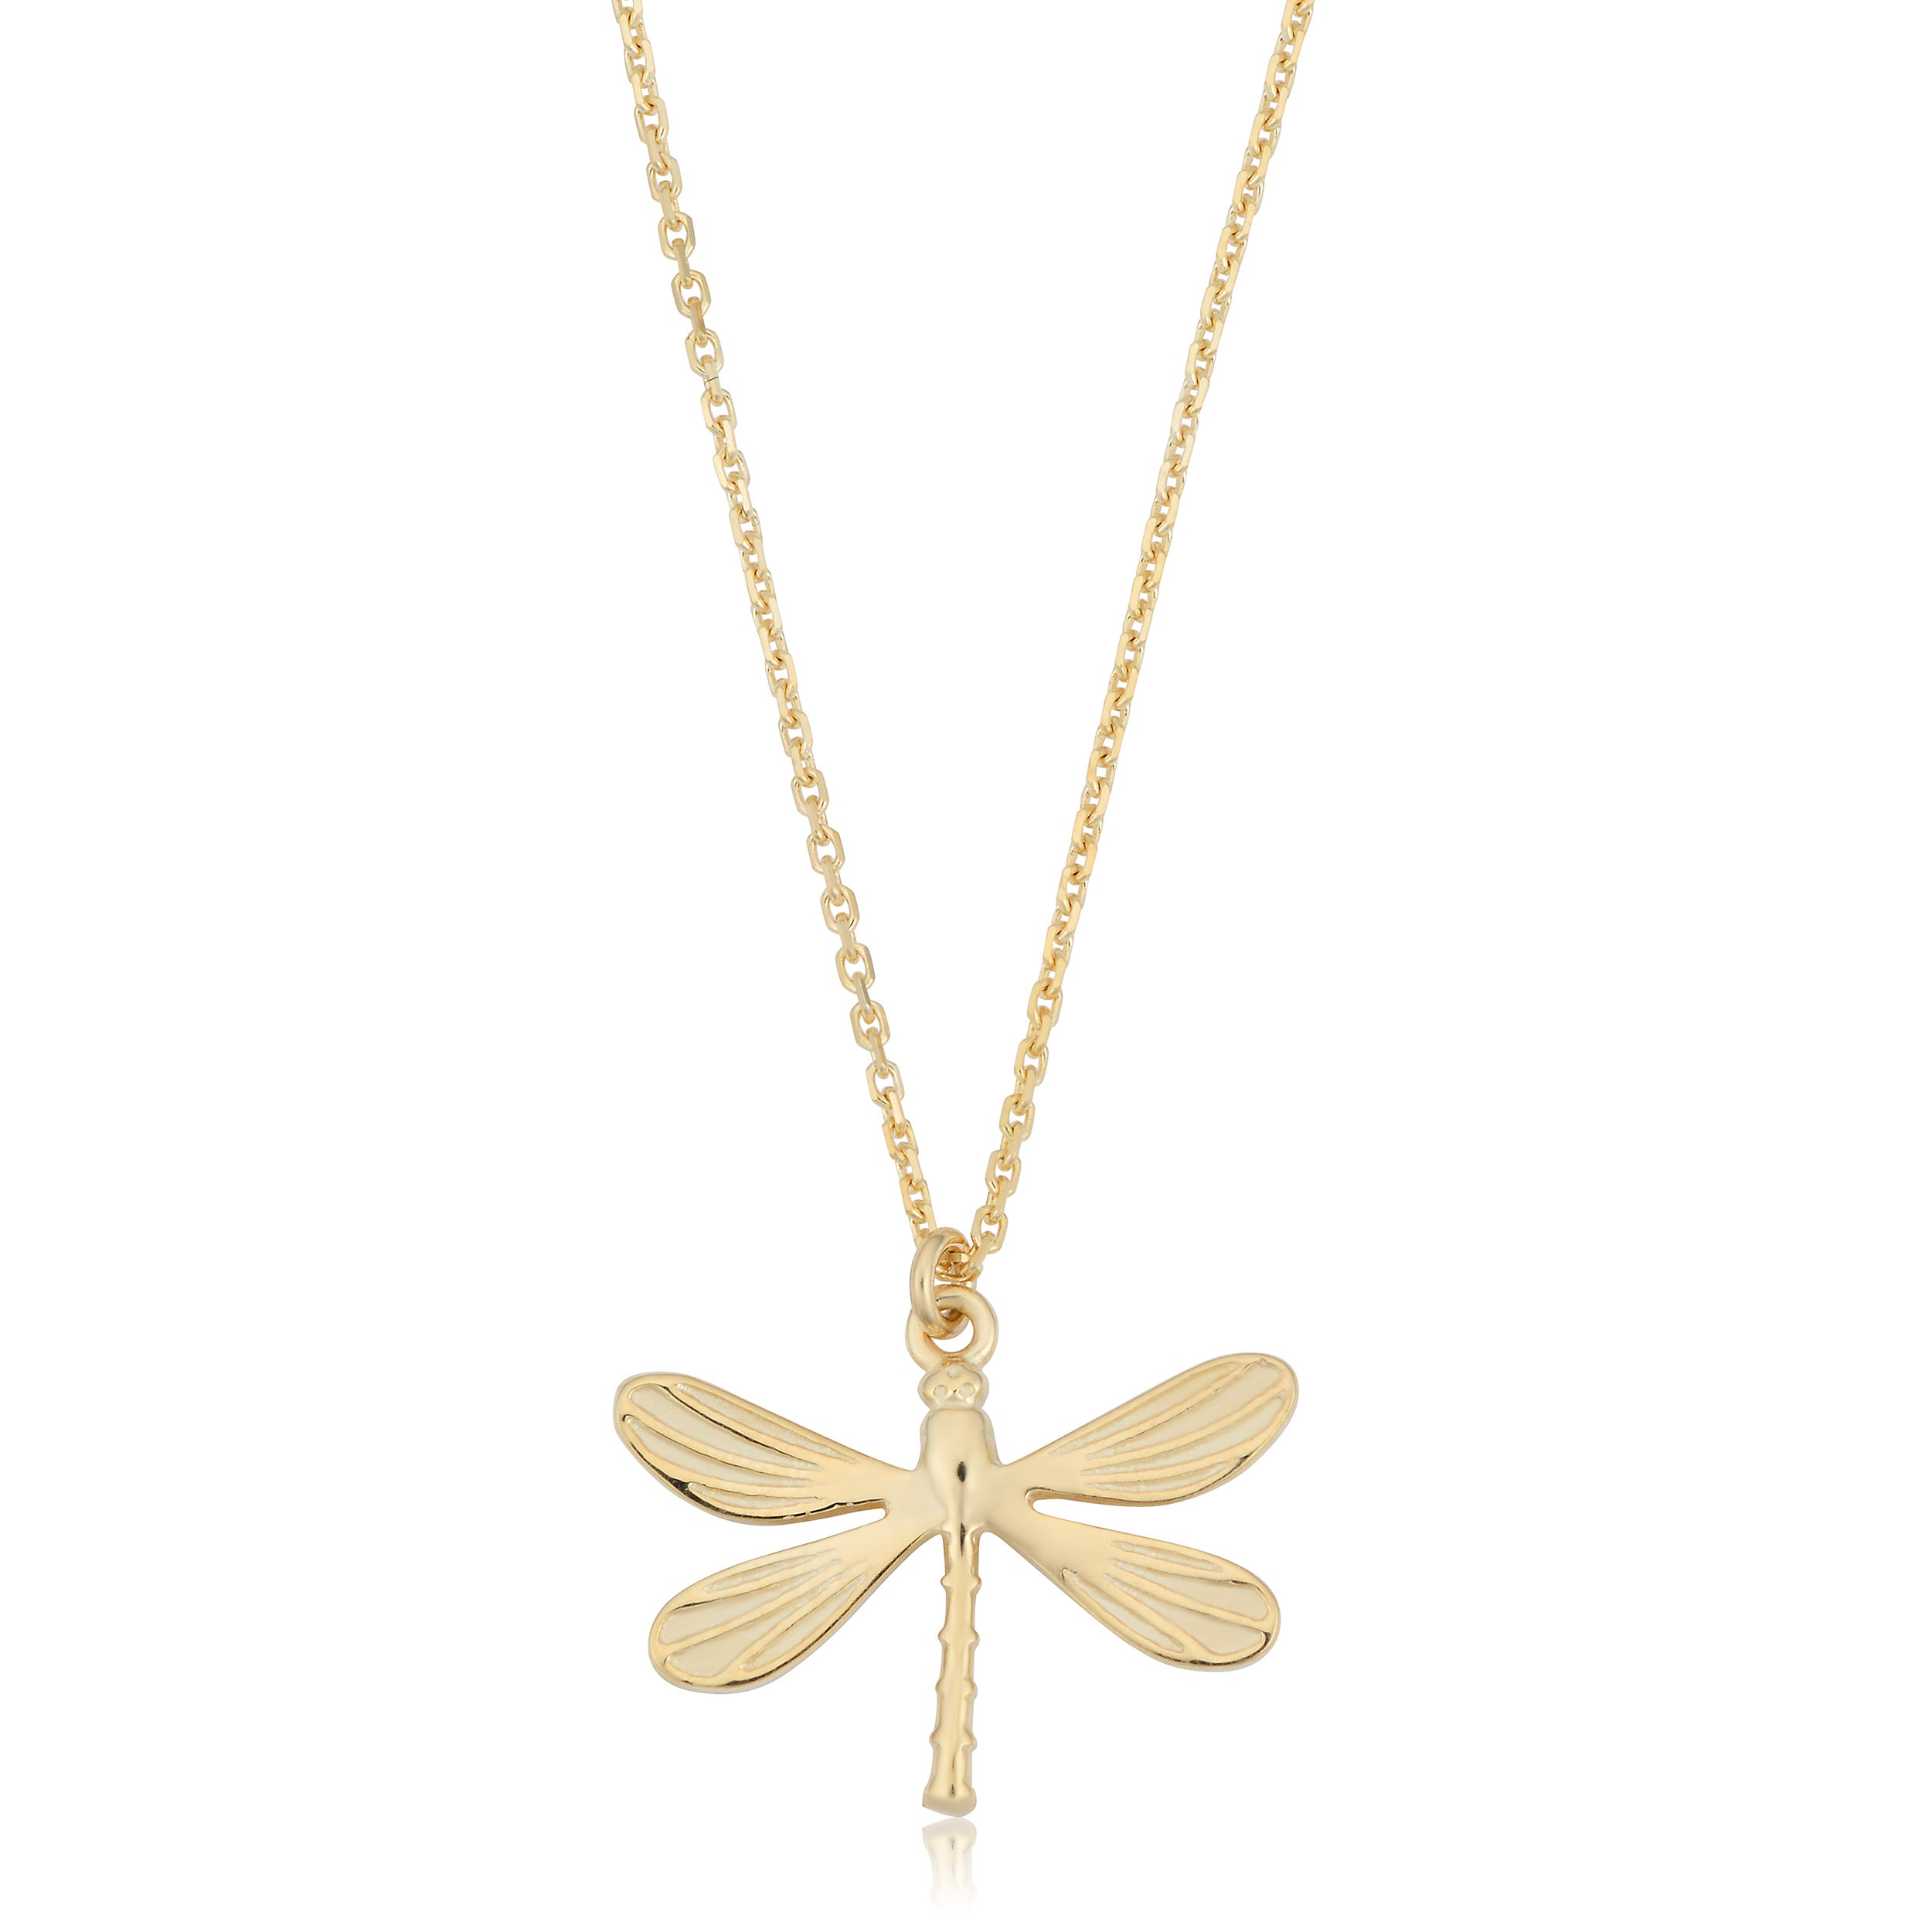 necklace pendant item rebecca solomon dragonfly necklaces